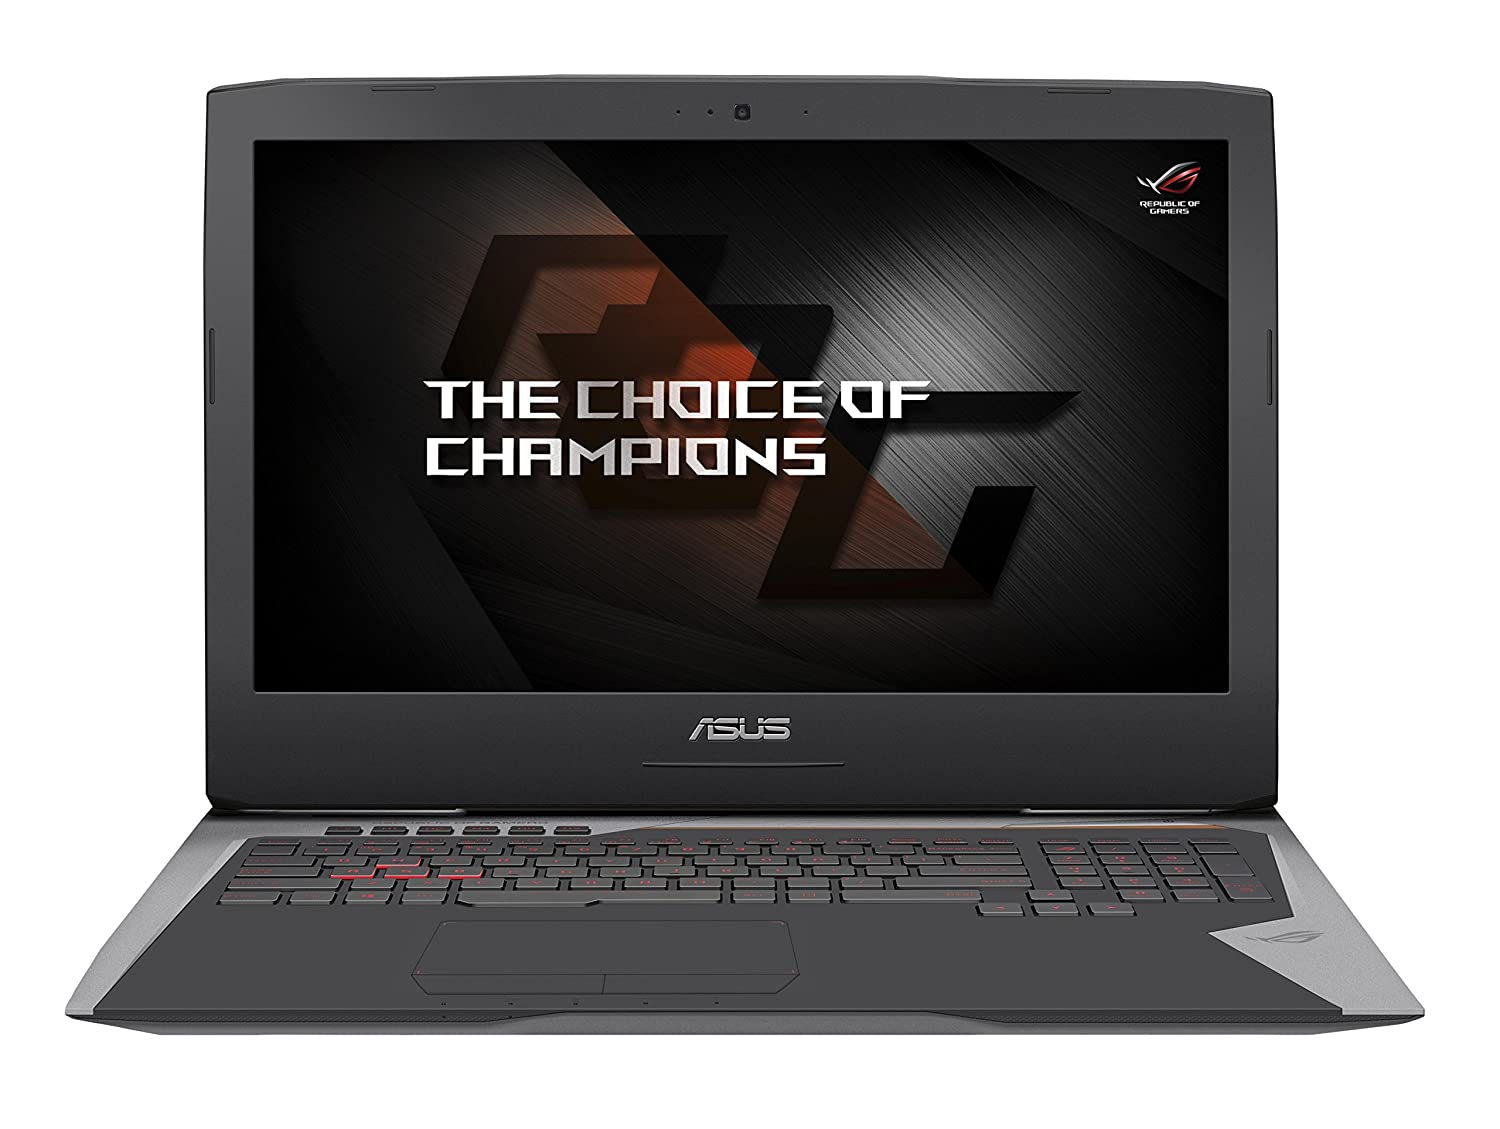 'ASUS g752vs-gc018t Notebook, Monitor 17.3 Full HD (Intel Core i7 – 6700HQ, 16 GB RAM, HDD de 1 TB y SSD 256 GB, NVIDIA gtx1070 8 GB